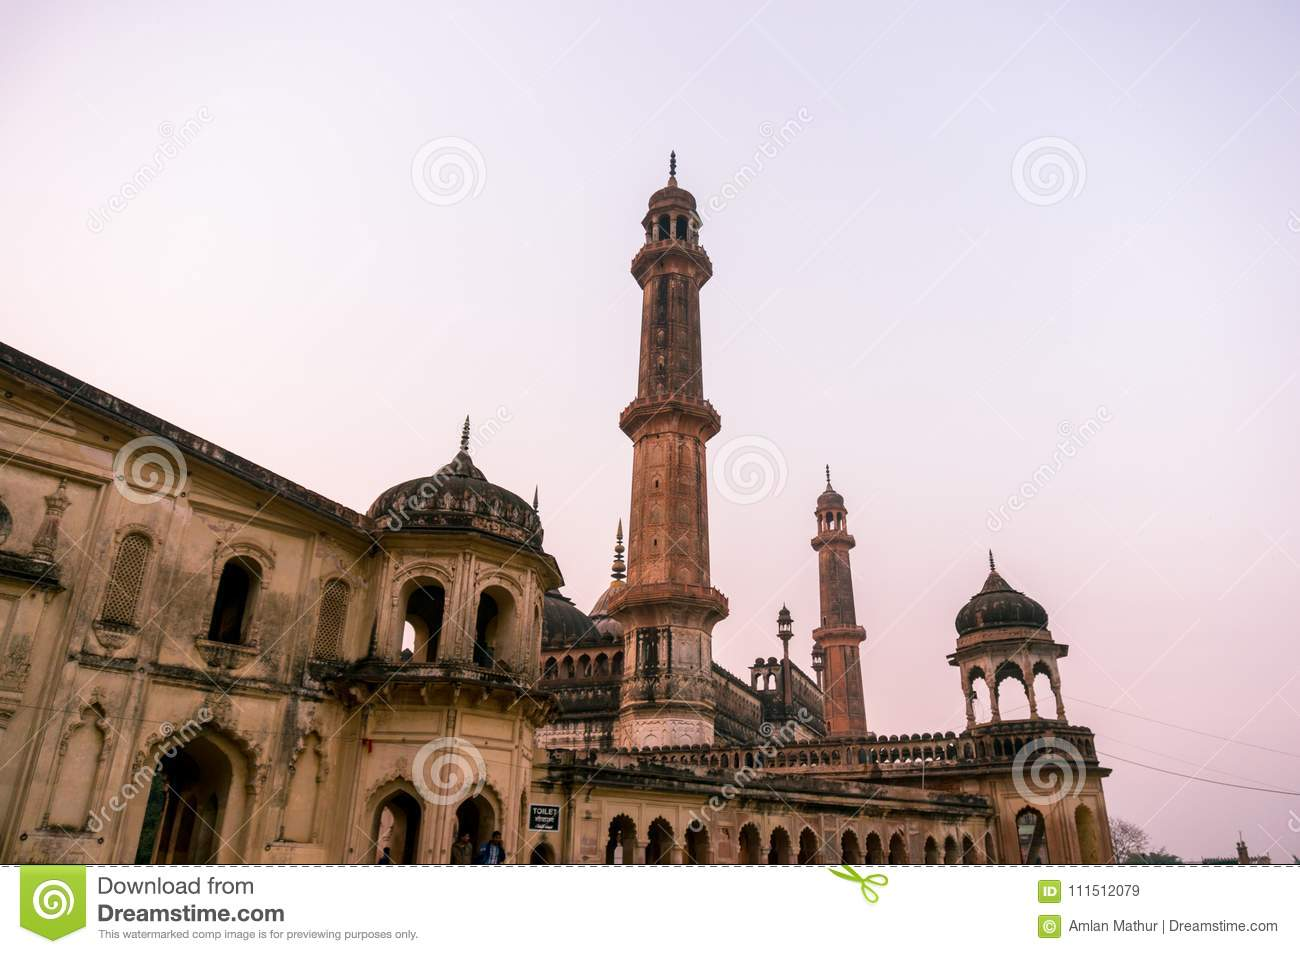 Closeup of the entrance gate of the asfi mosque in lucknow